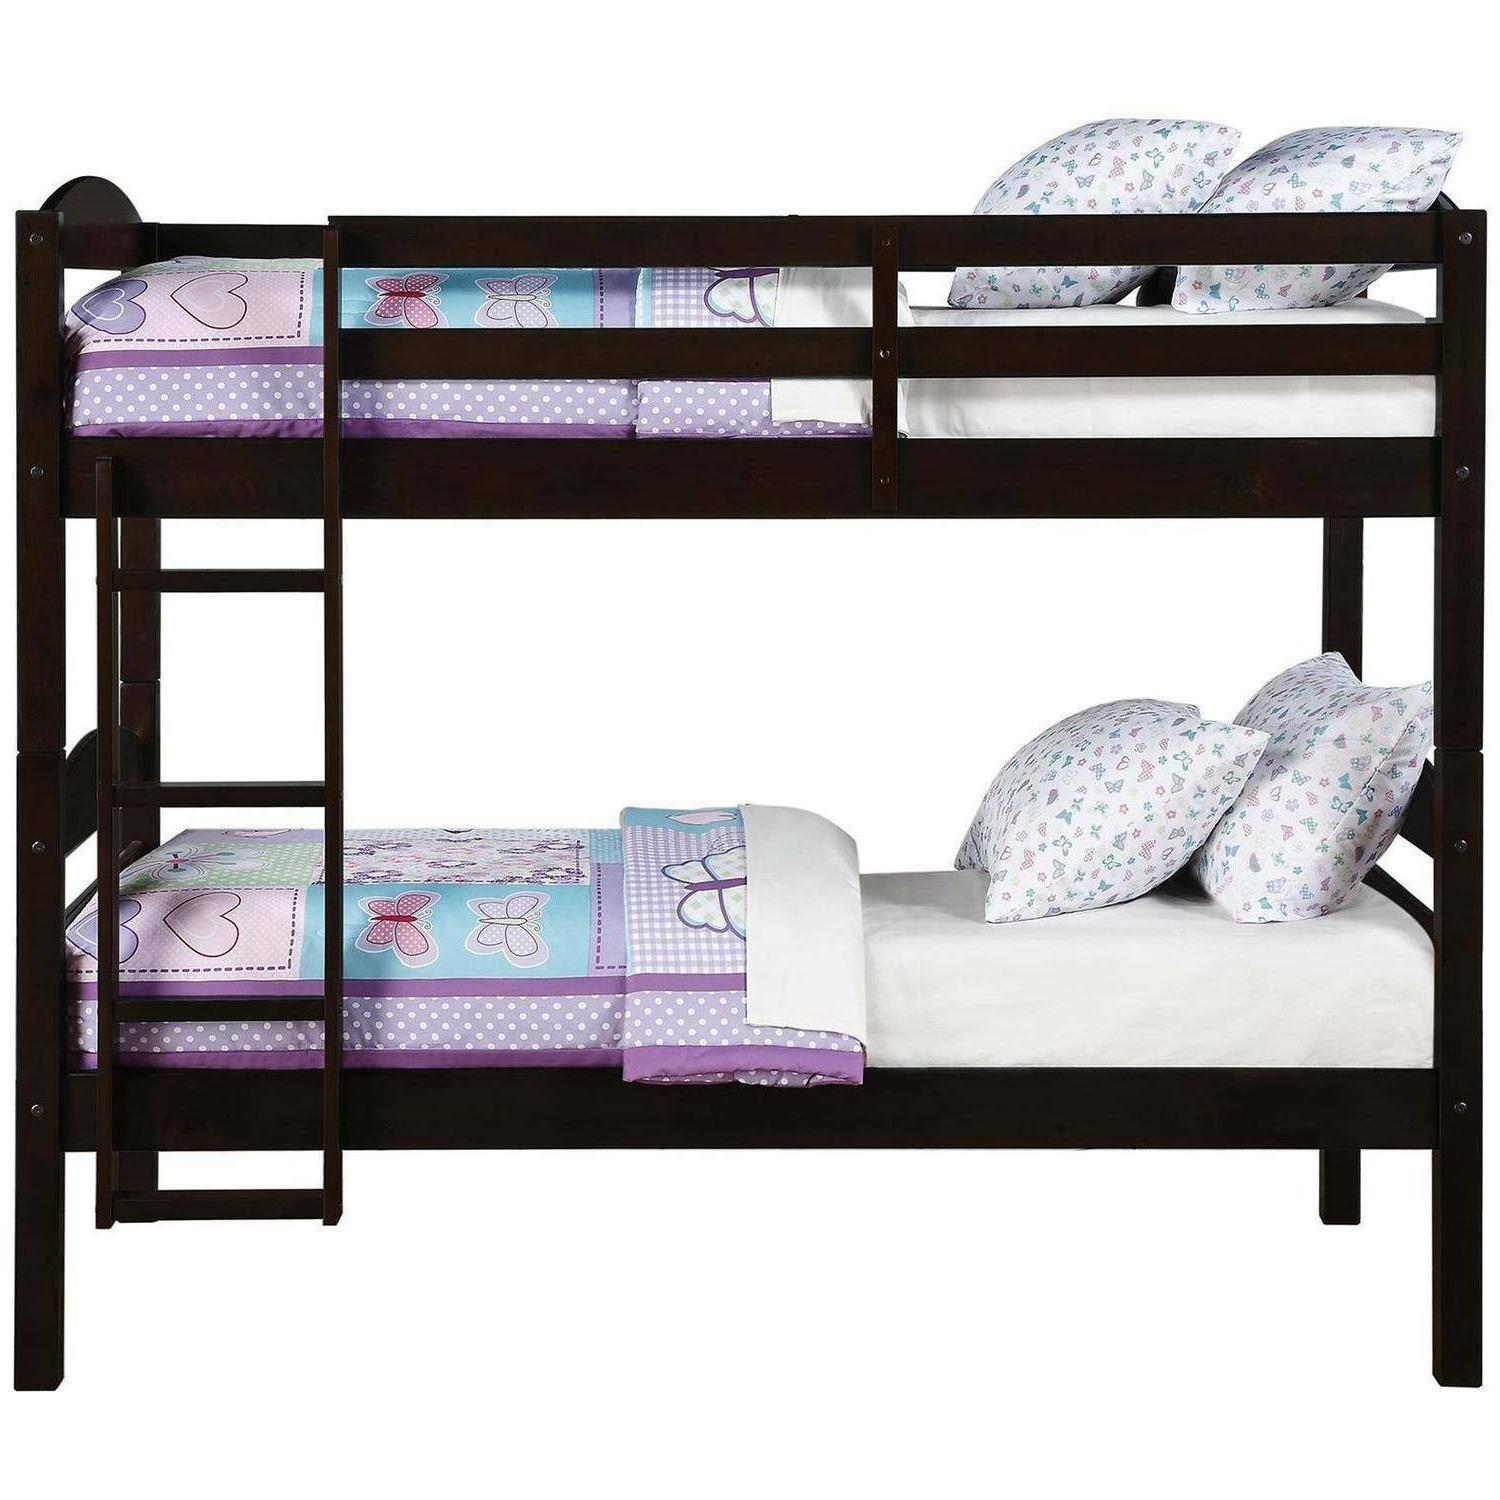 Bunk Beds For Twin Twin Wood Bunked Frame Bedroom